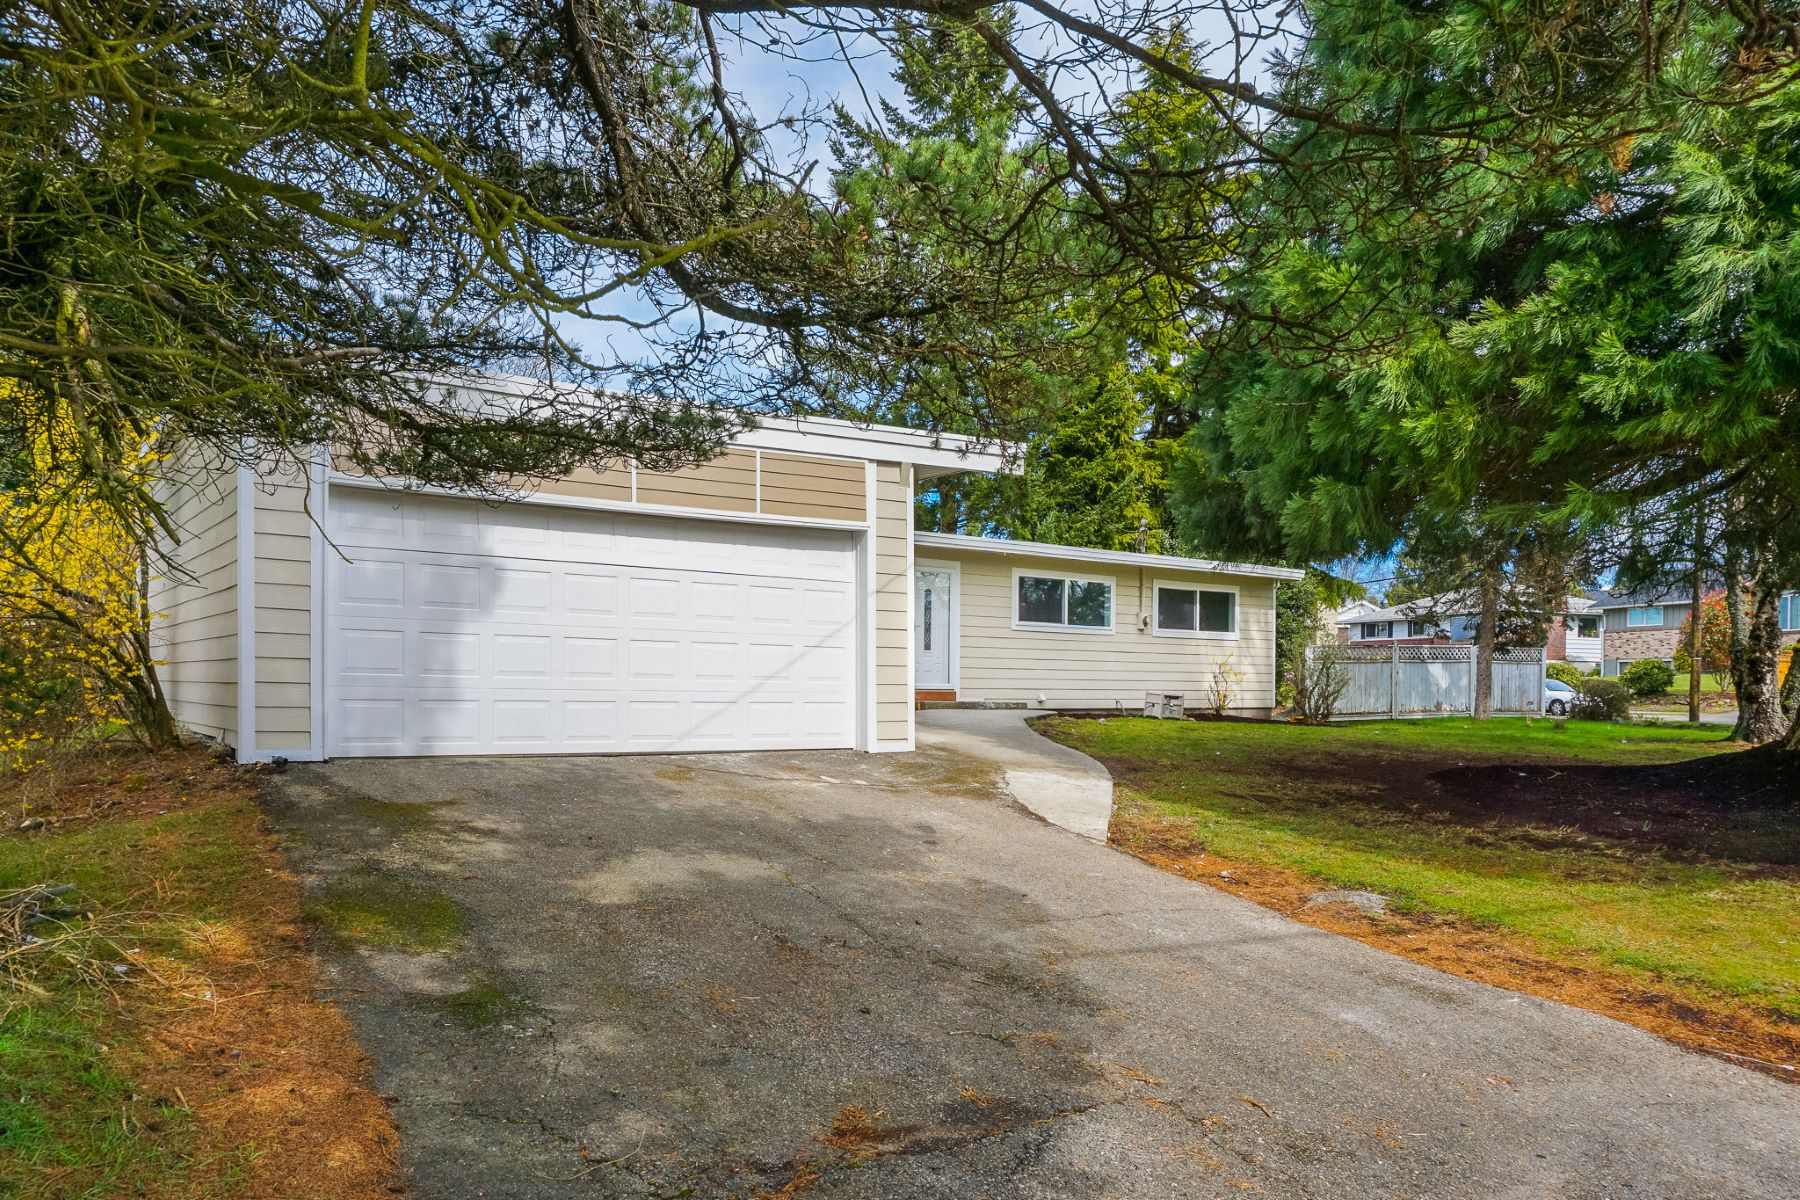 Single Family Home for Active at Savvy NW Living 6701 N 17th St Tacoma, Washington 98406 United States